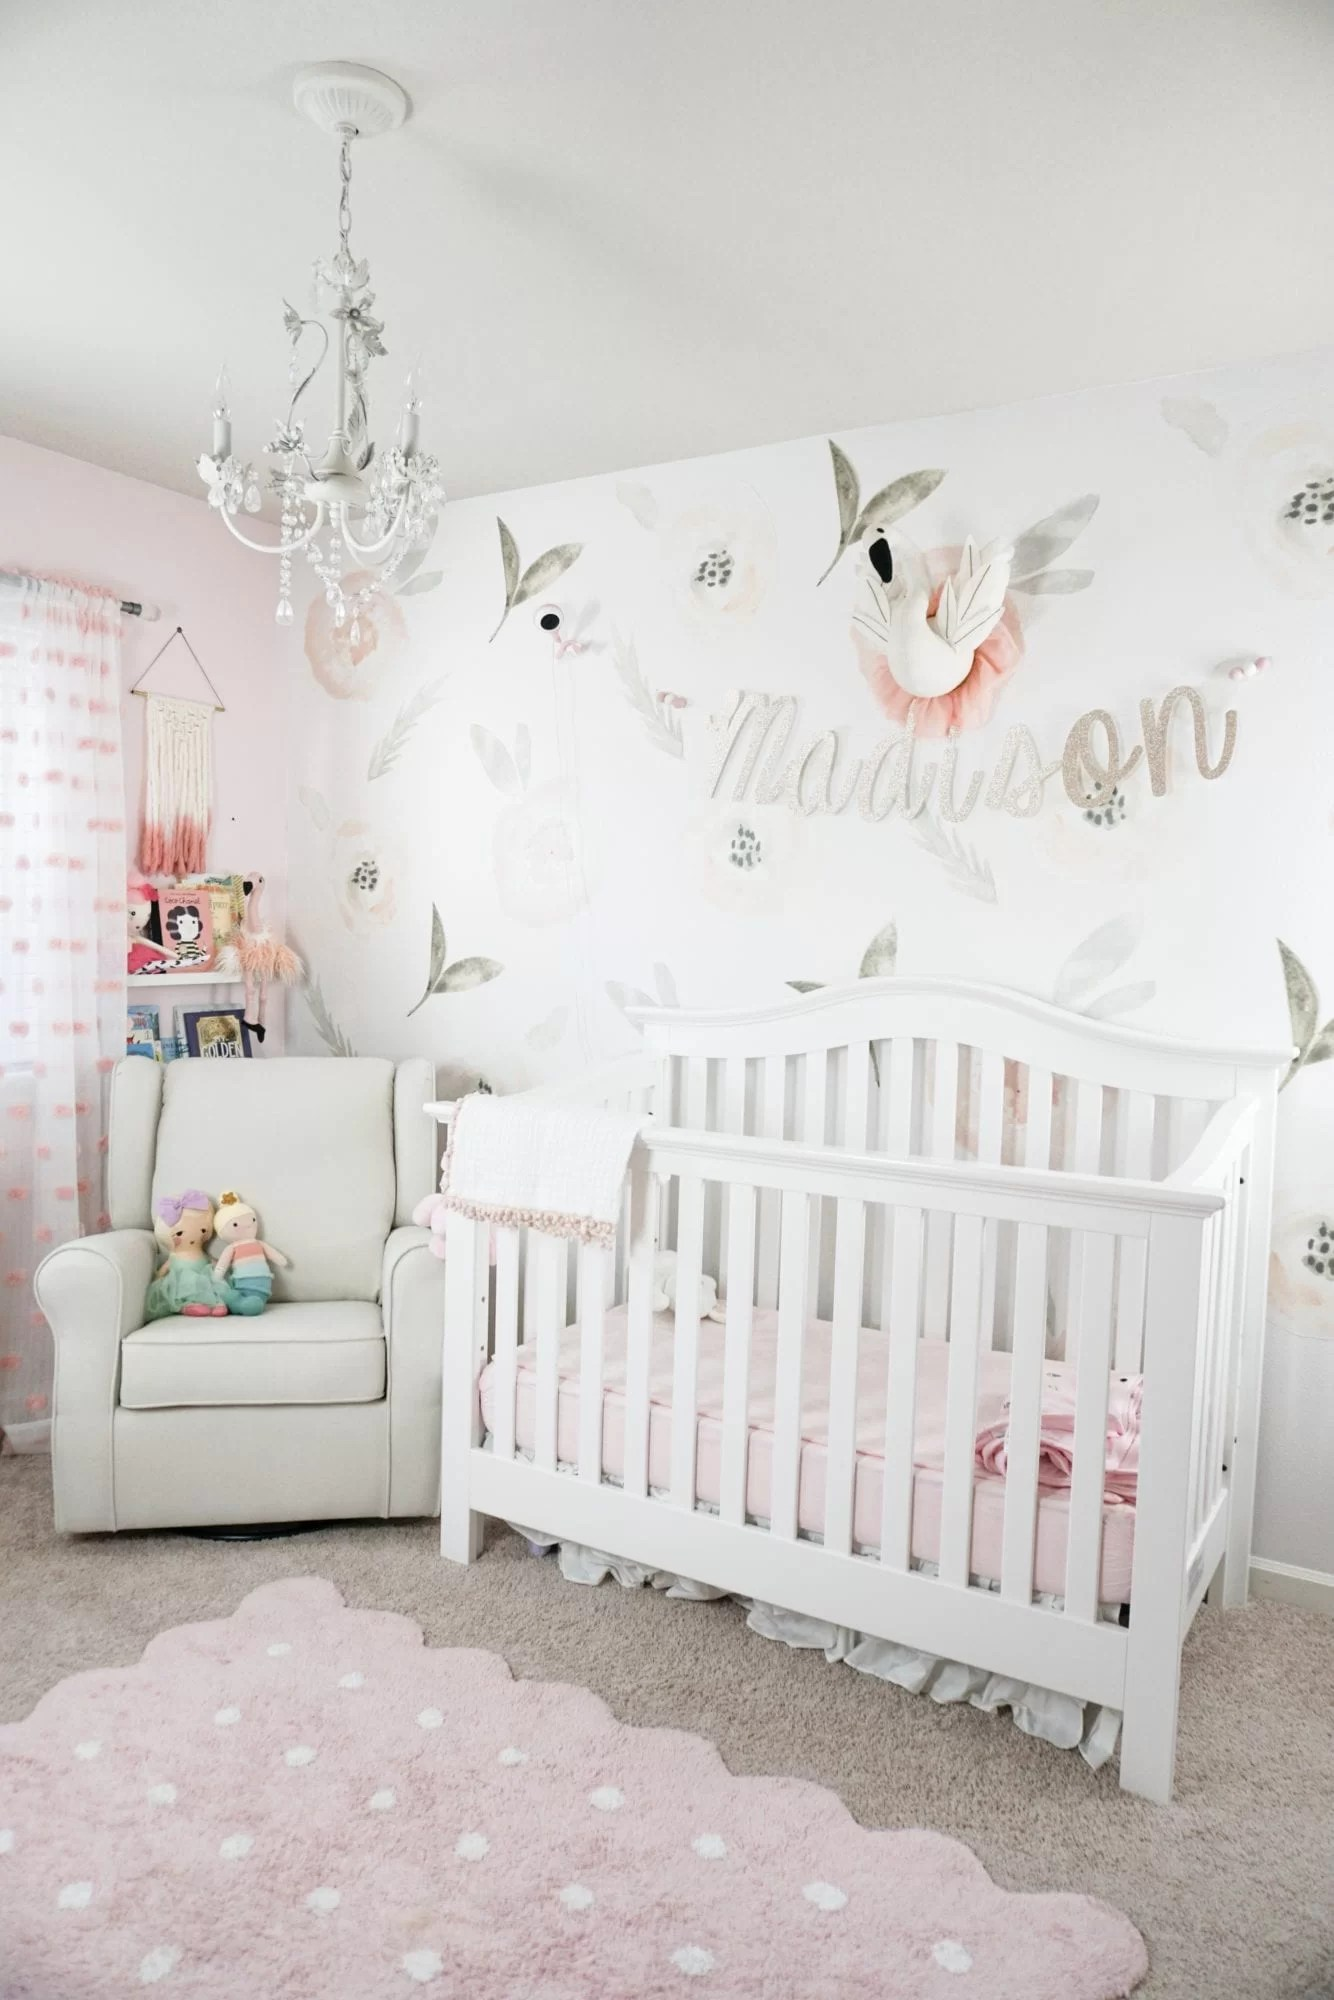 girls nursery 21 the house of hood blogPictures Of Girlsnursery #14